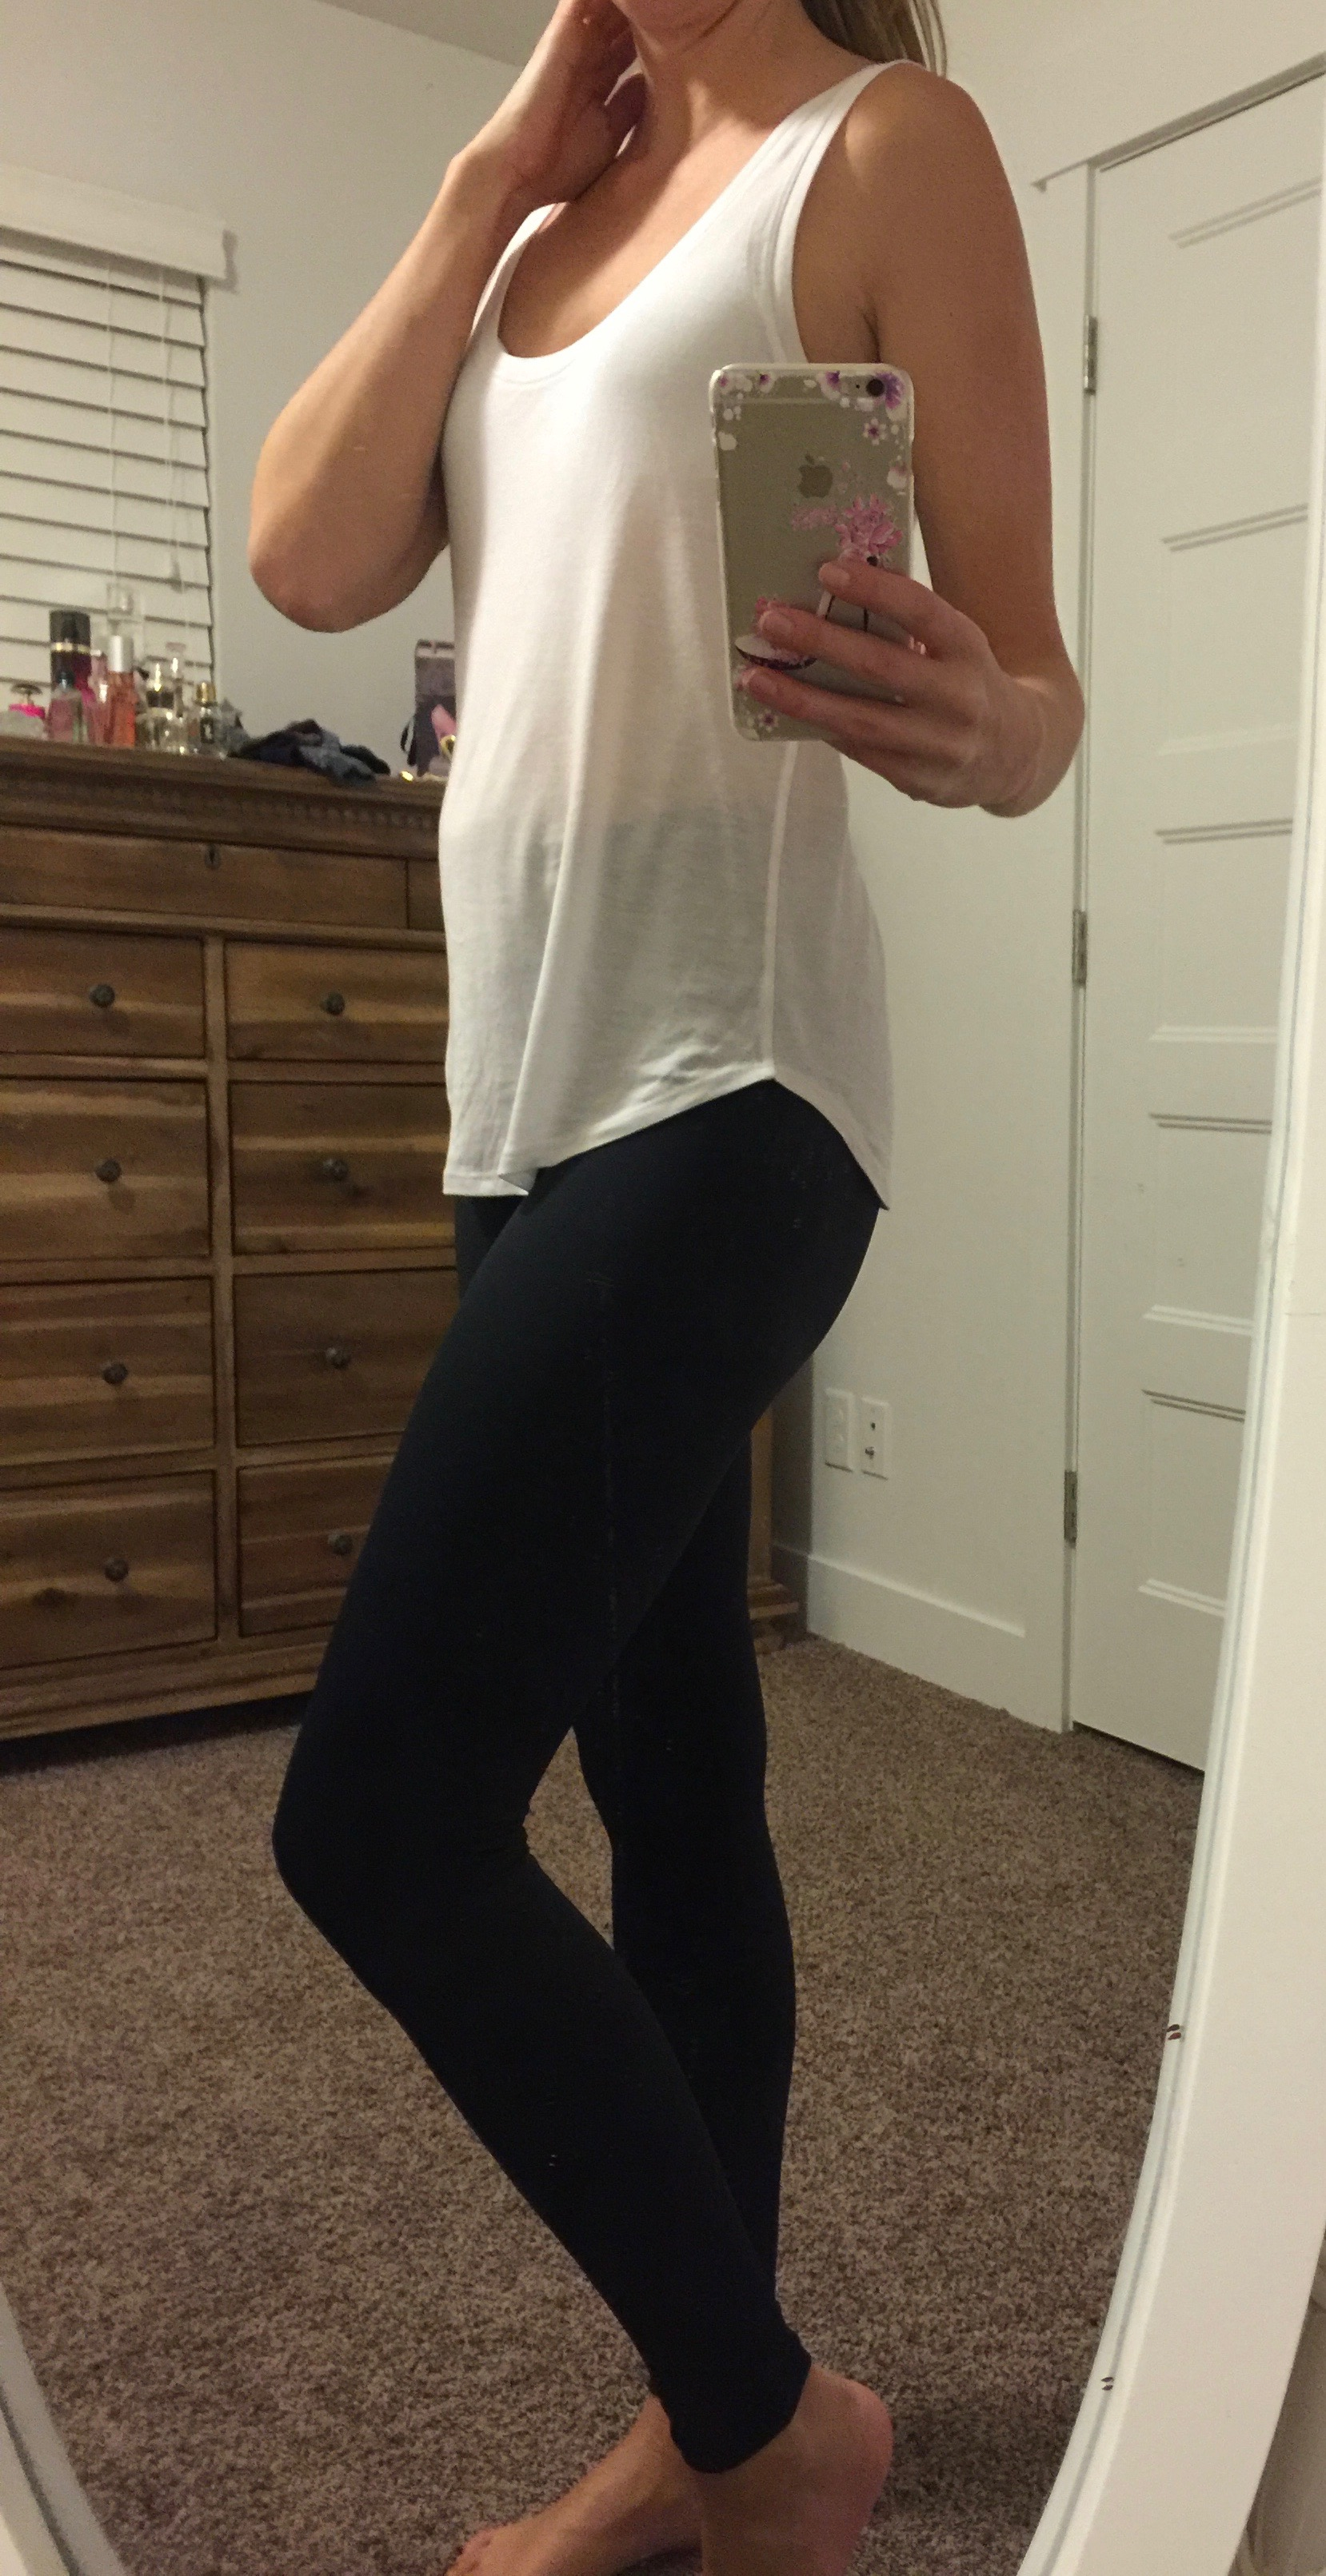 Putting On Yoga Pants - Pant Row